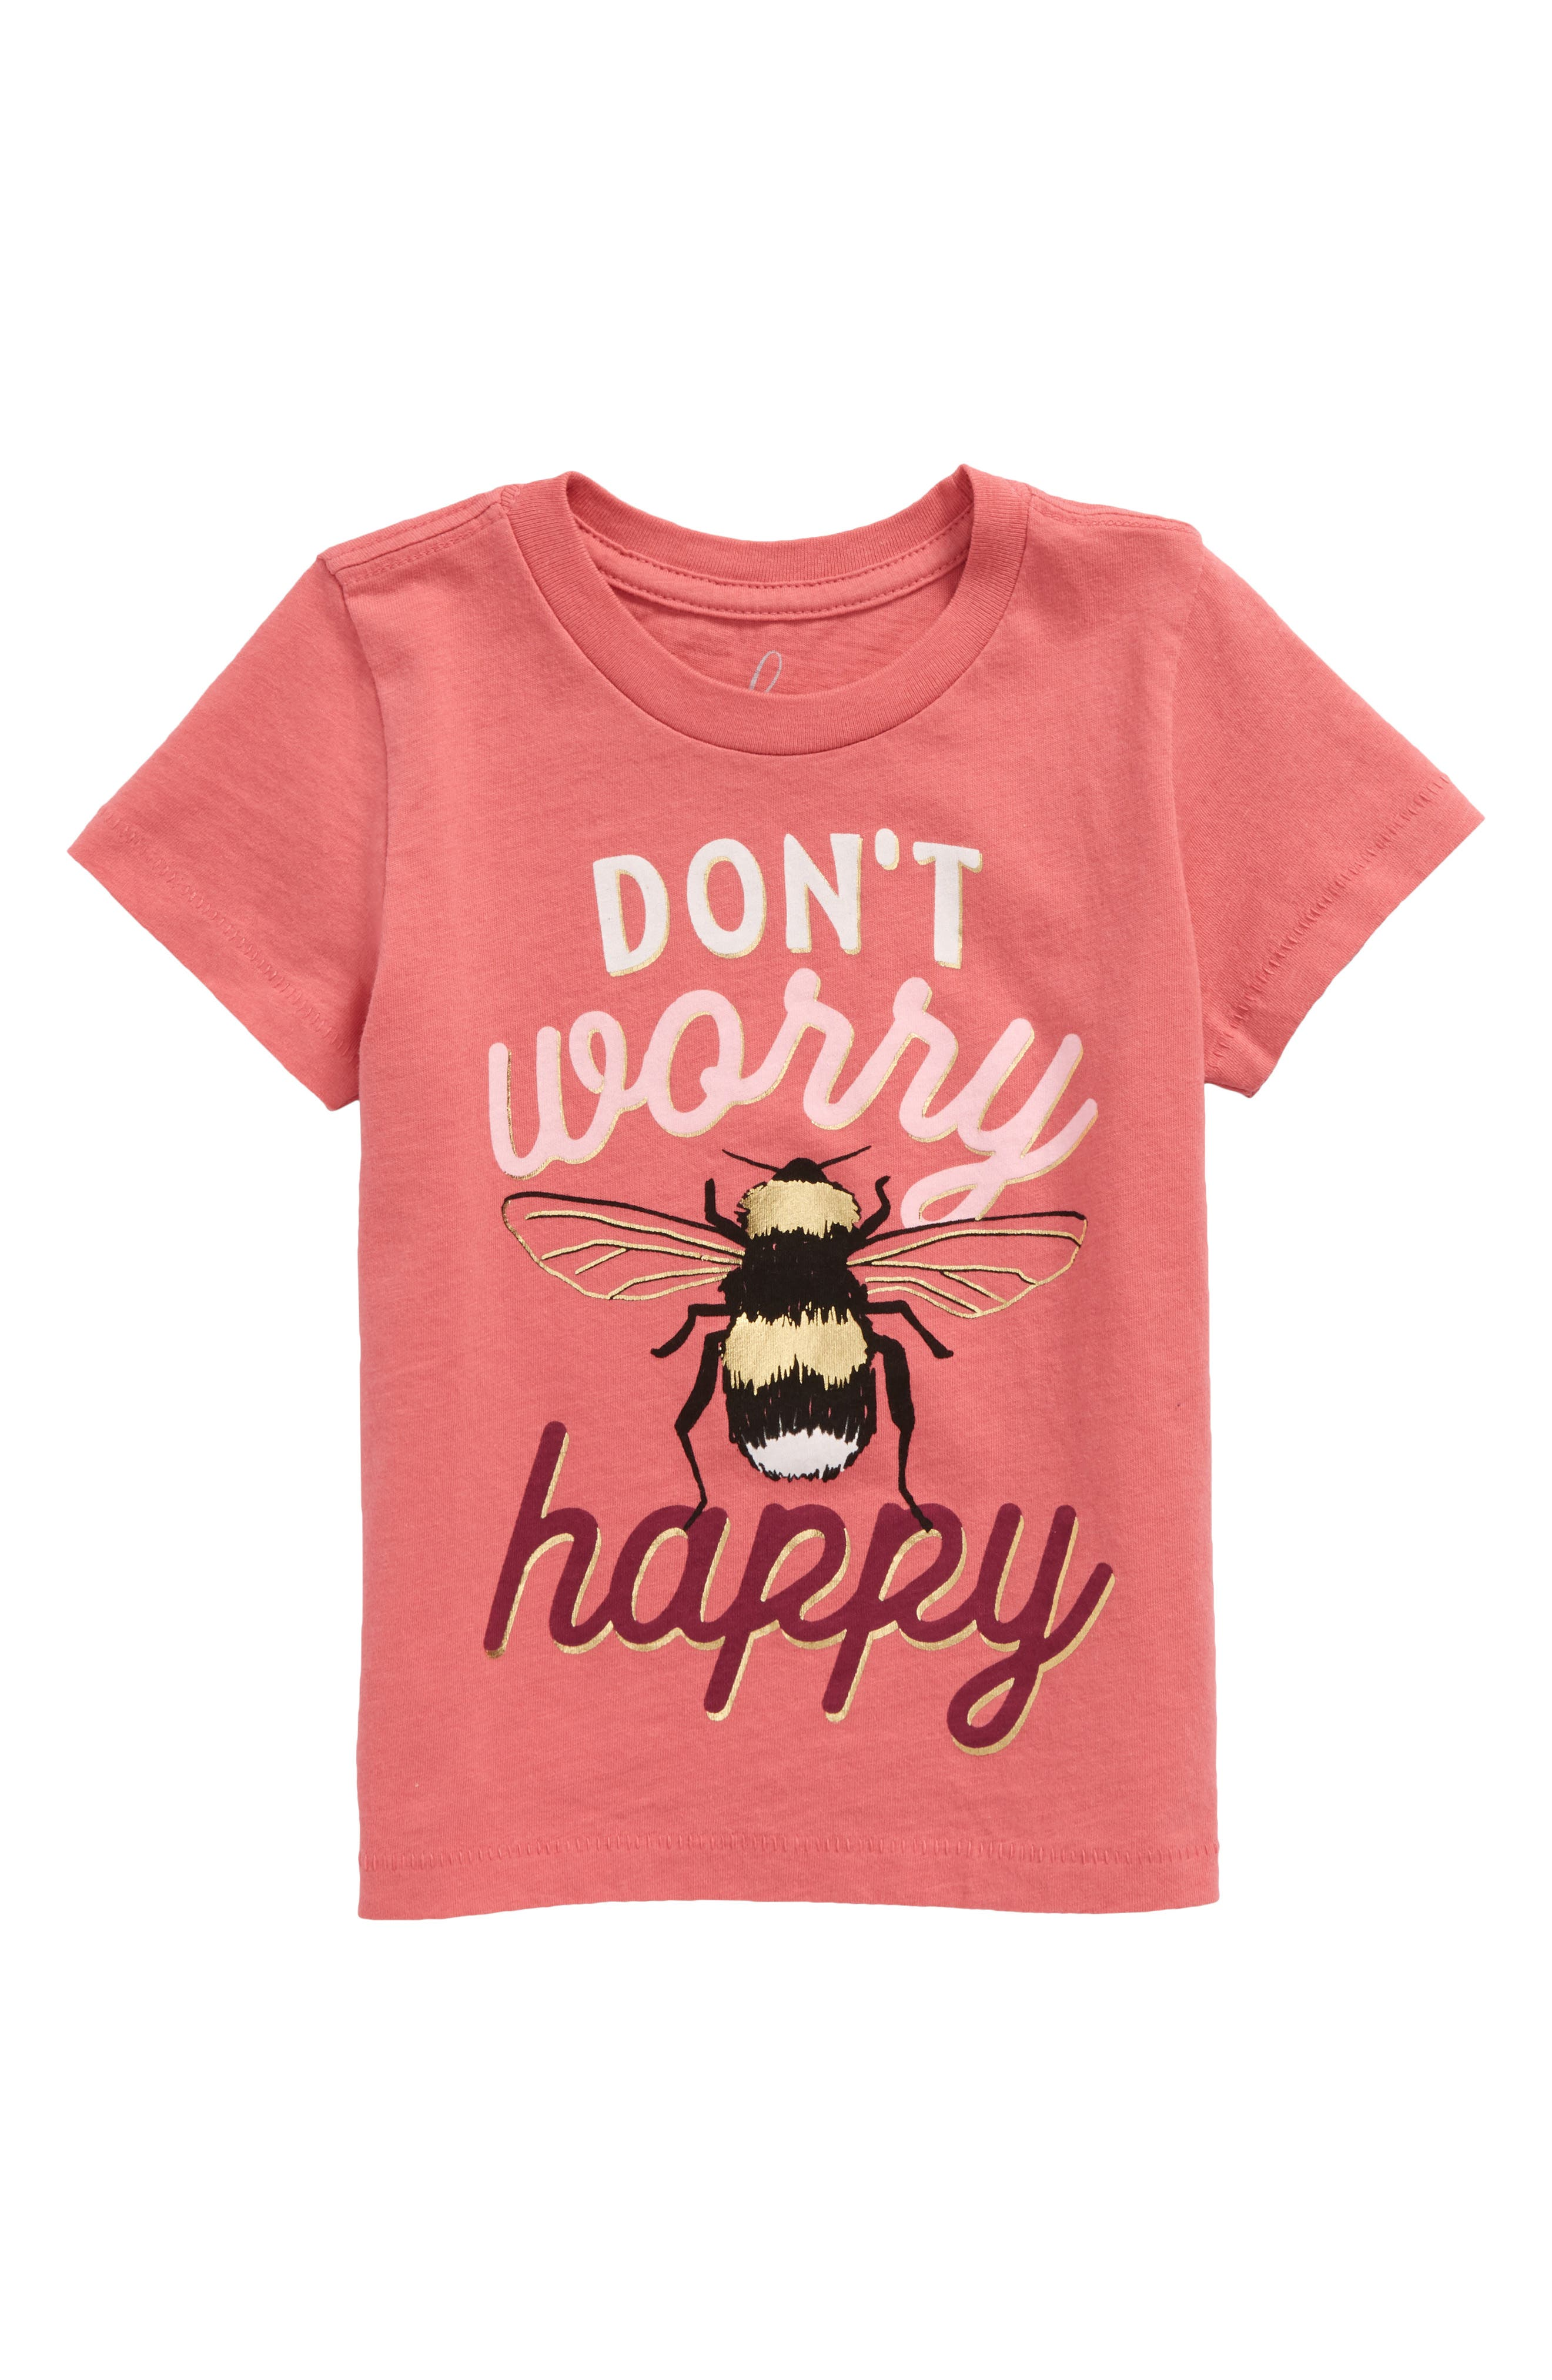 Peek Don't Worry Graphic Tee (Baby Girls)